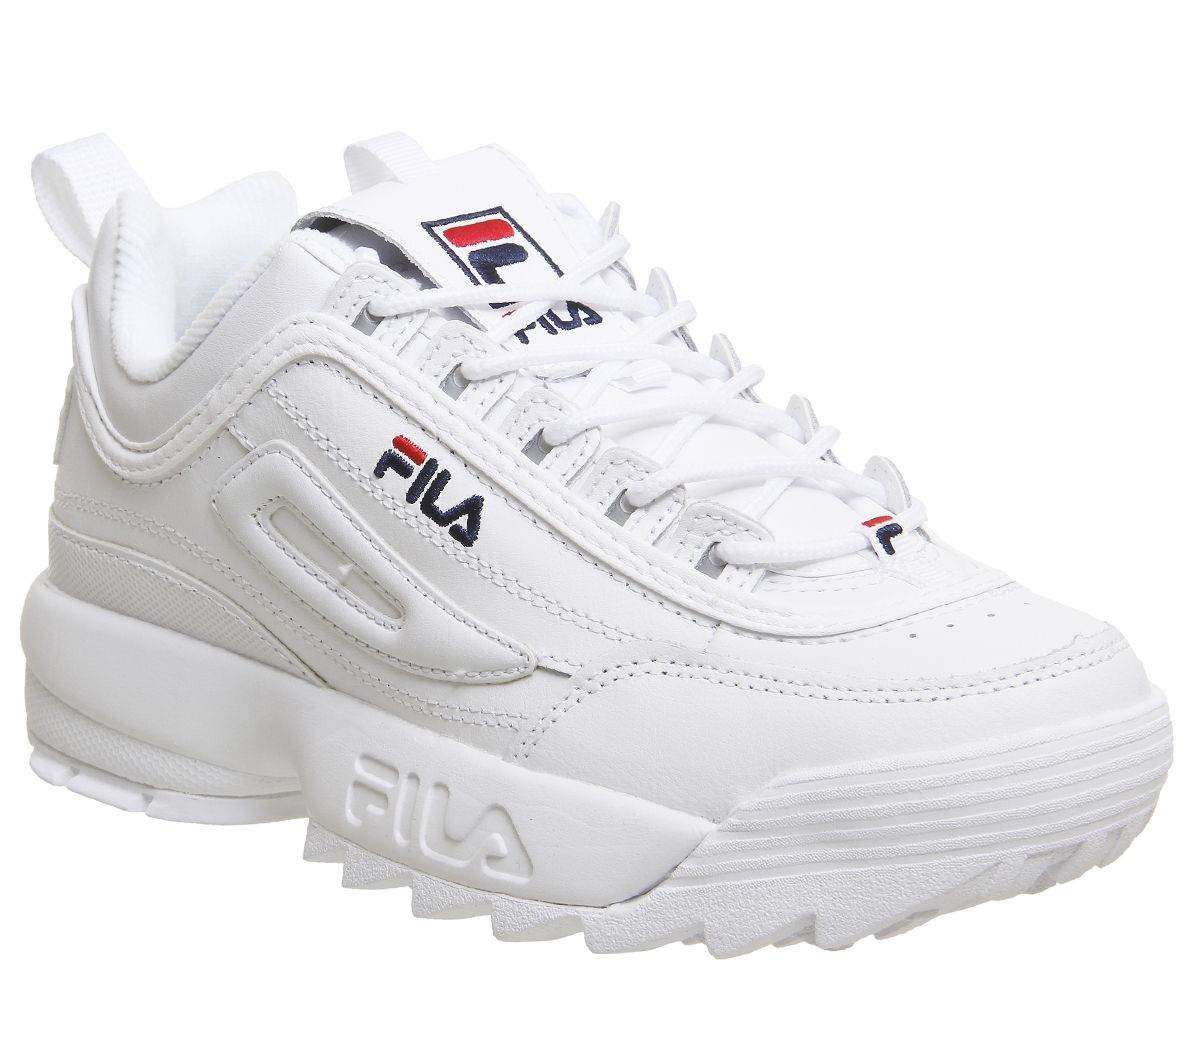 Details about Womens Fila White Synthetic Lace Up Trainers Size UK 4 *Ex-Display